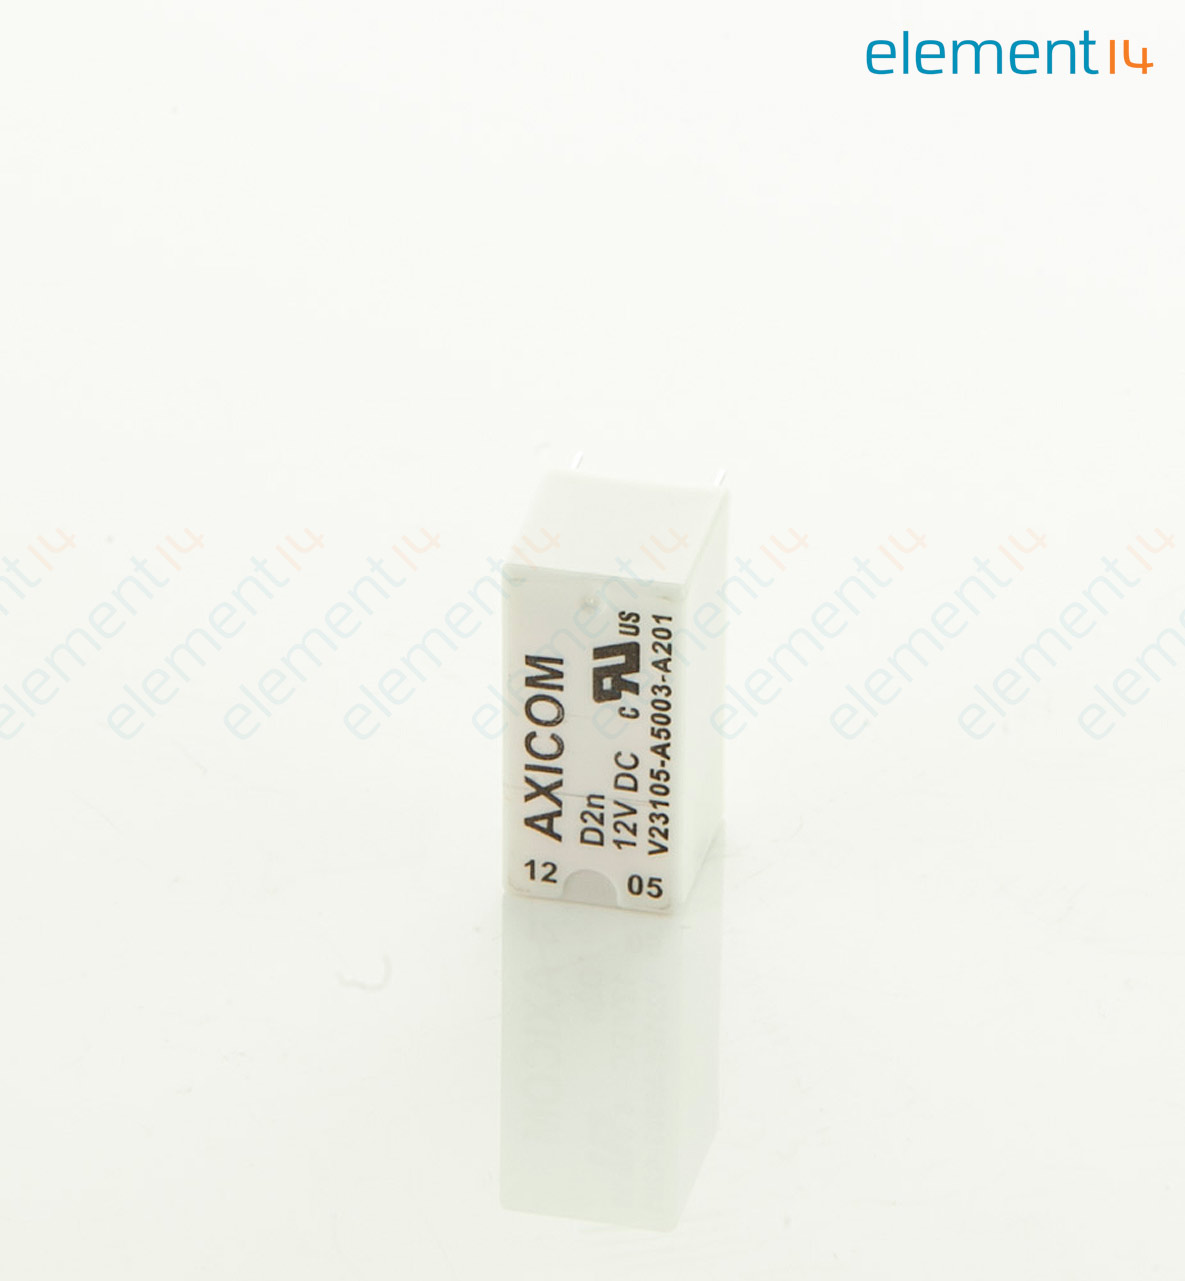 V23105a5003a201 Axicom Te Connectivity Signal Relay 12 Vdc Dpdt Spdt 12v Datasheet Add To Compare